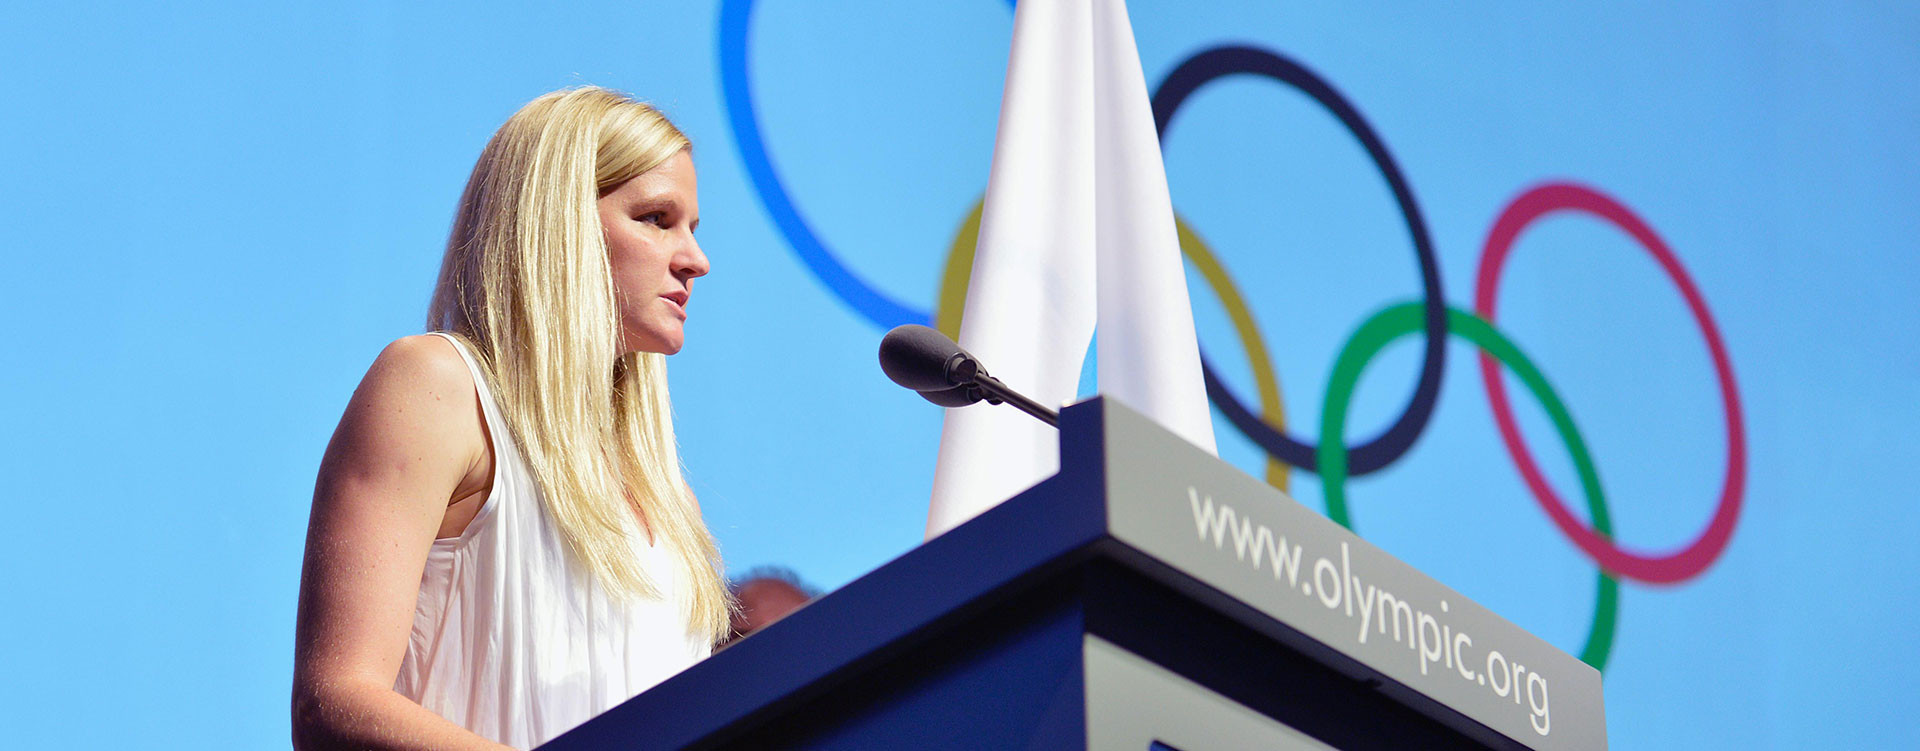 Zimbabwe's double Olympic swimming gold medallist Kirsty Coventry is expected to be represent the interests of athletes on the new Independent Testing Authority ©IOC